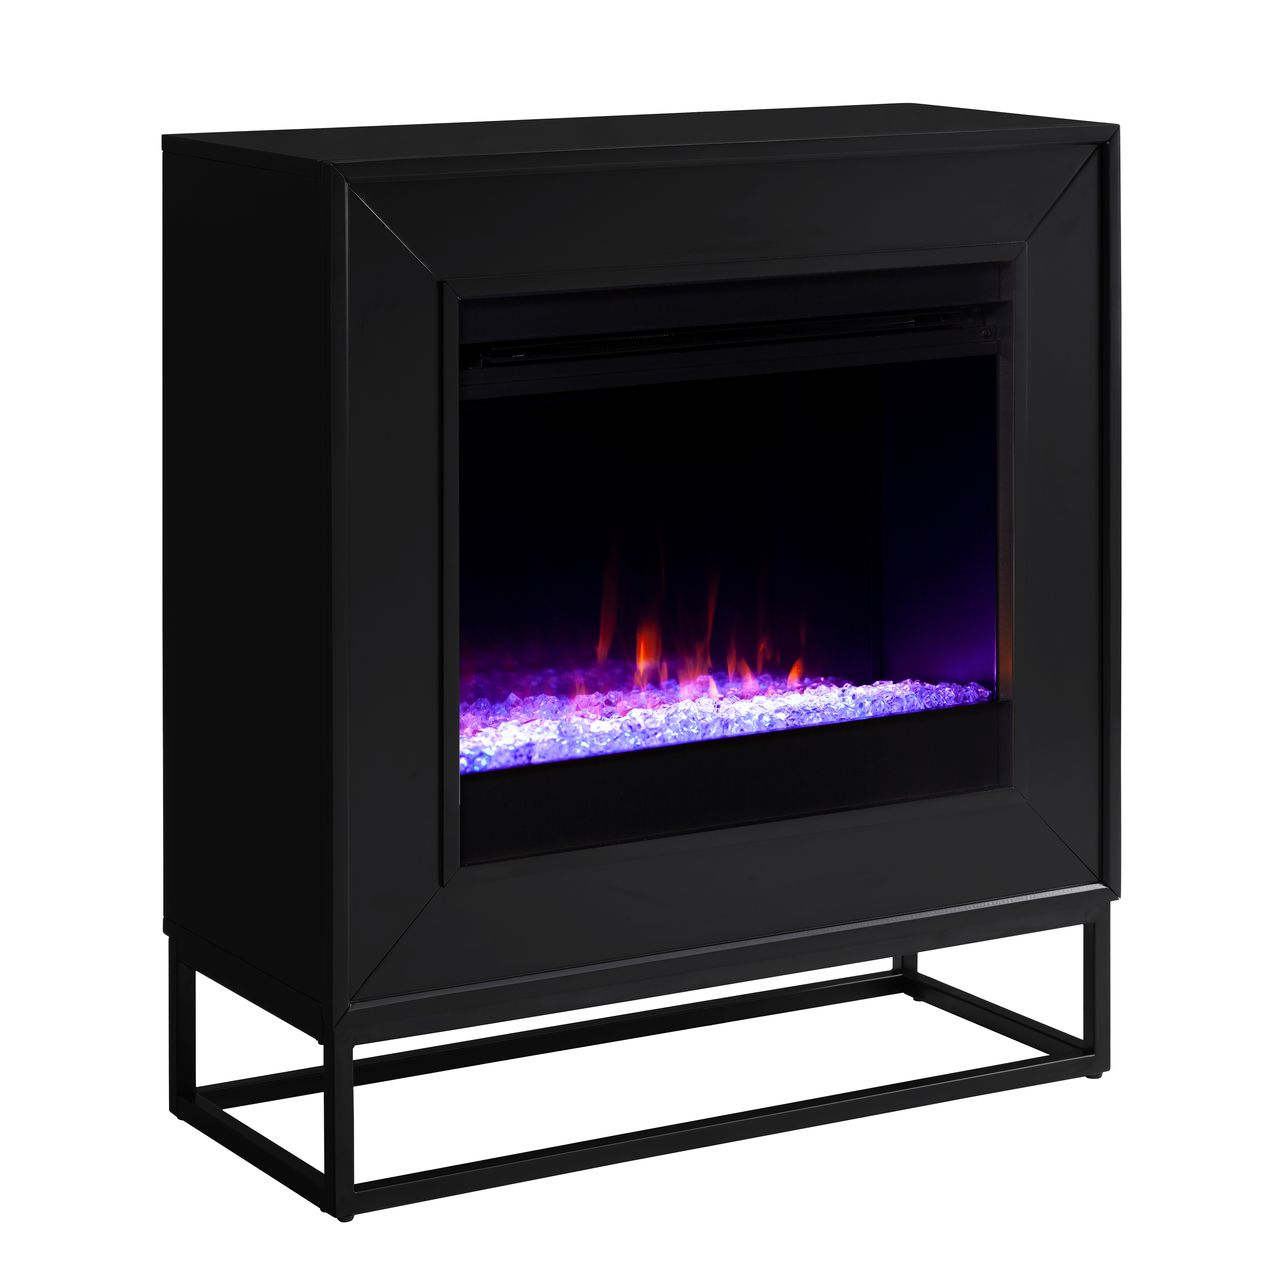 Holly & Martin Frescan Color Changing Electric Fireplace in Black